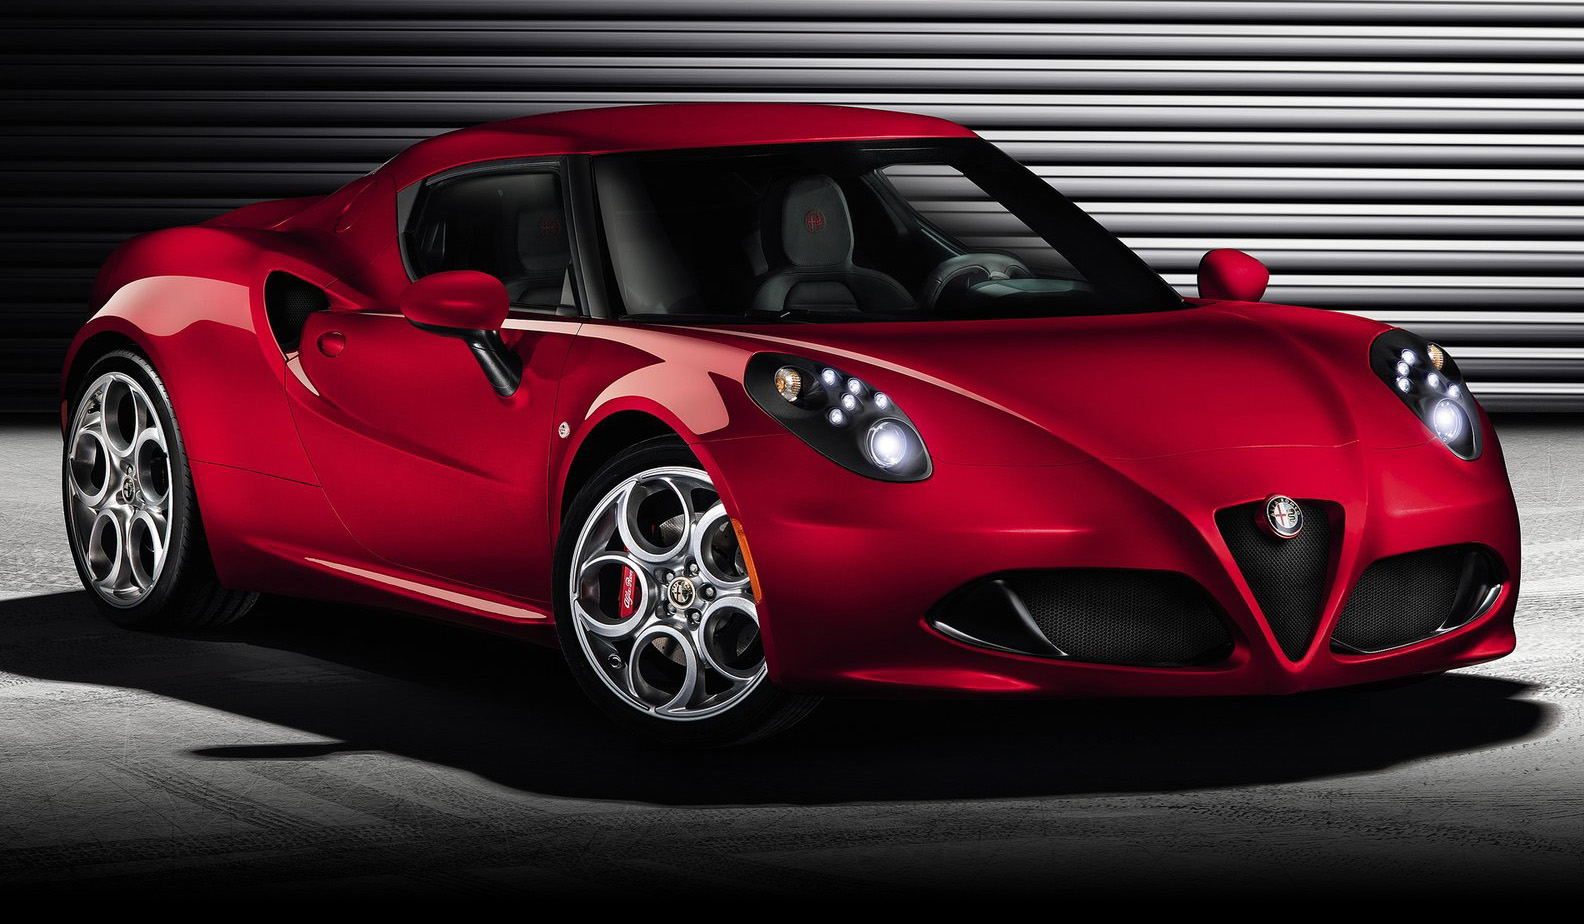 Alfa romeo 4c photo - 4